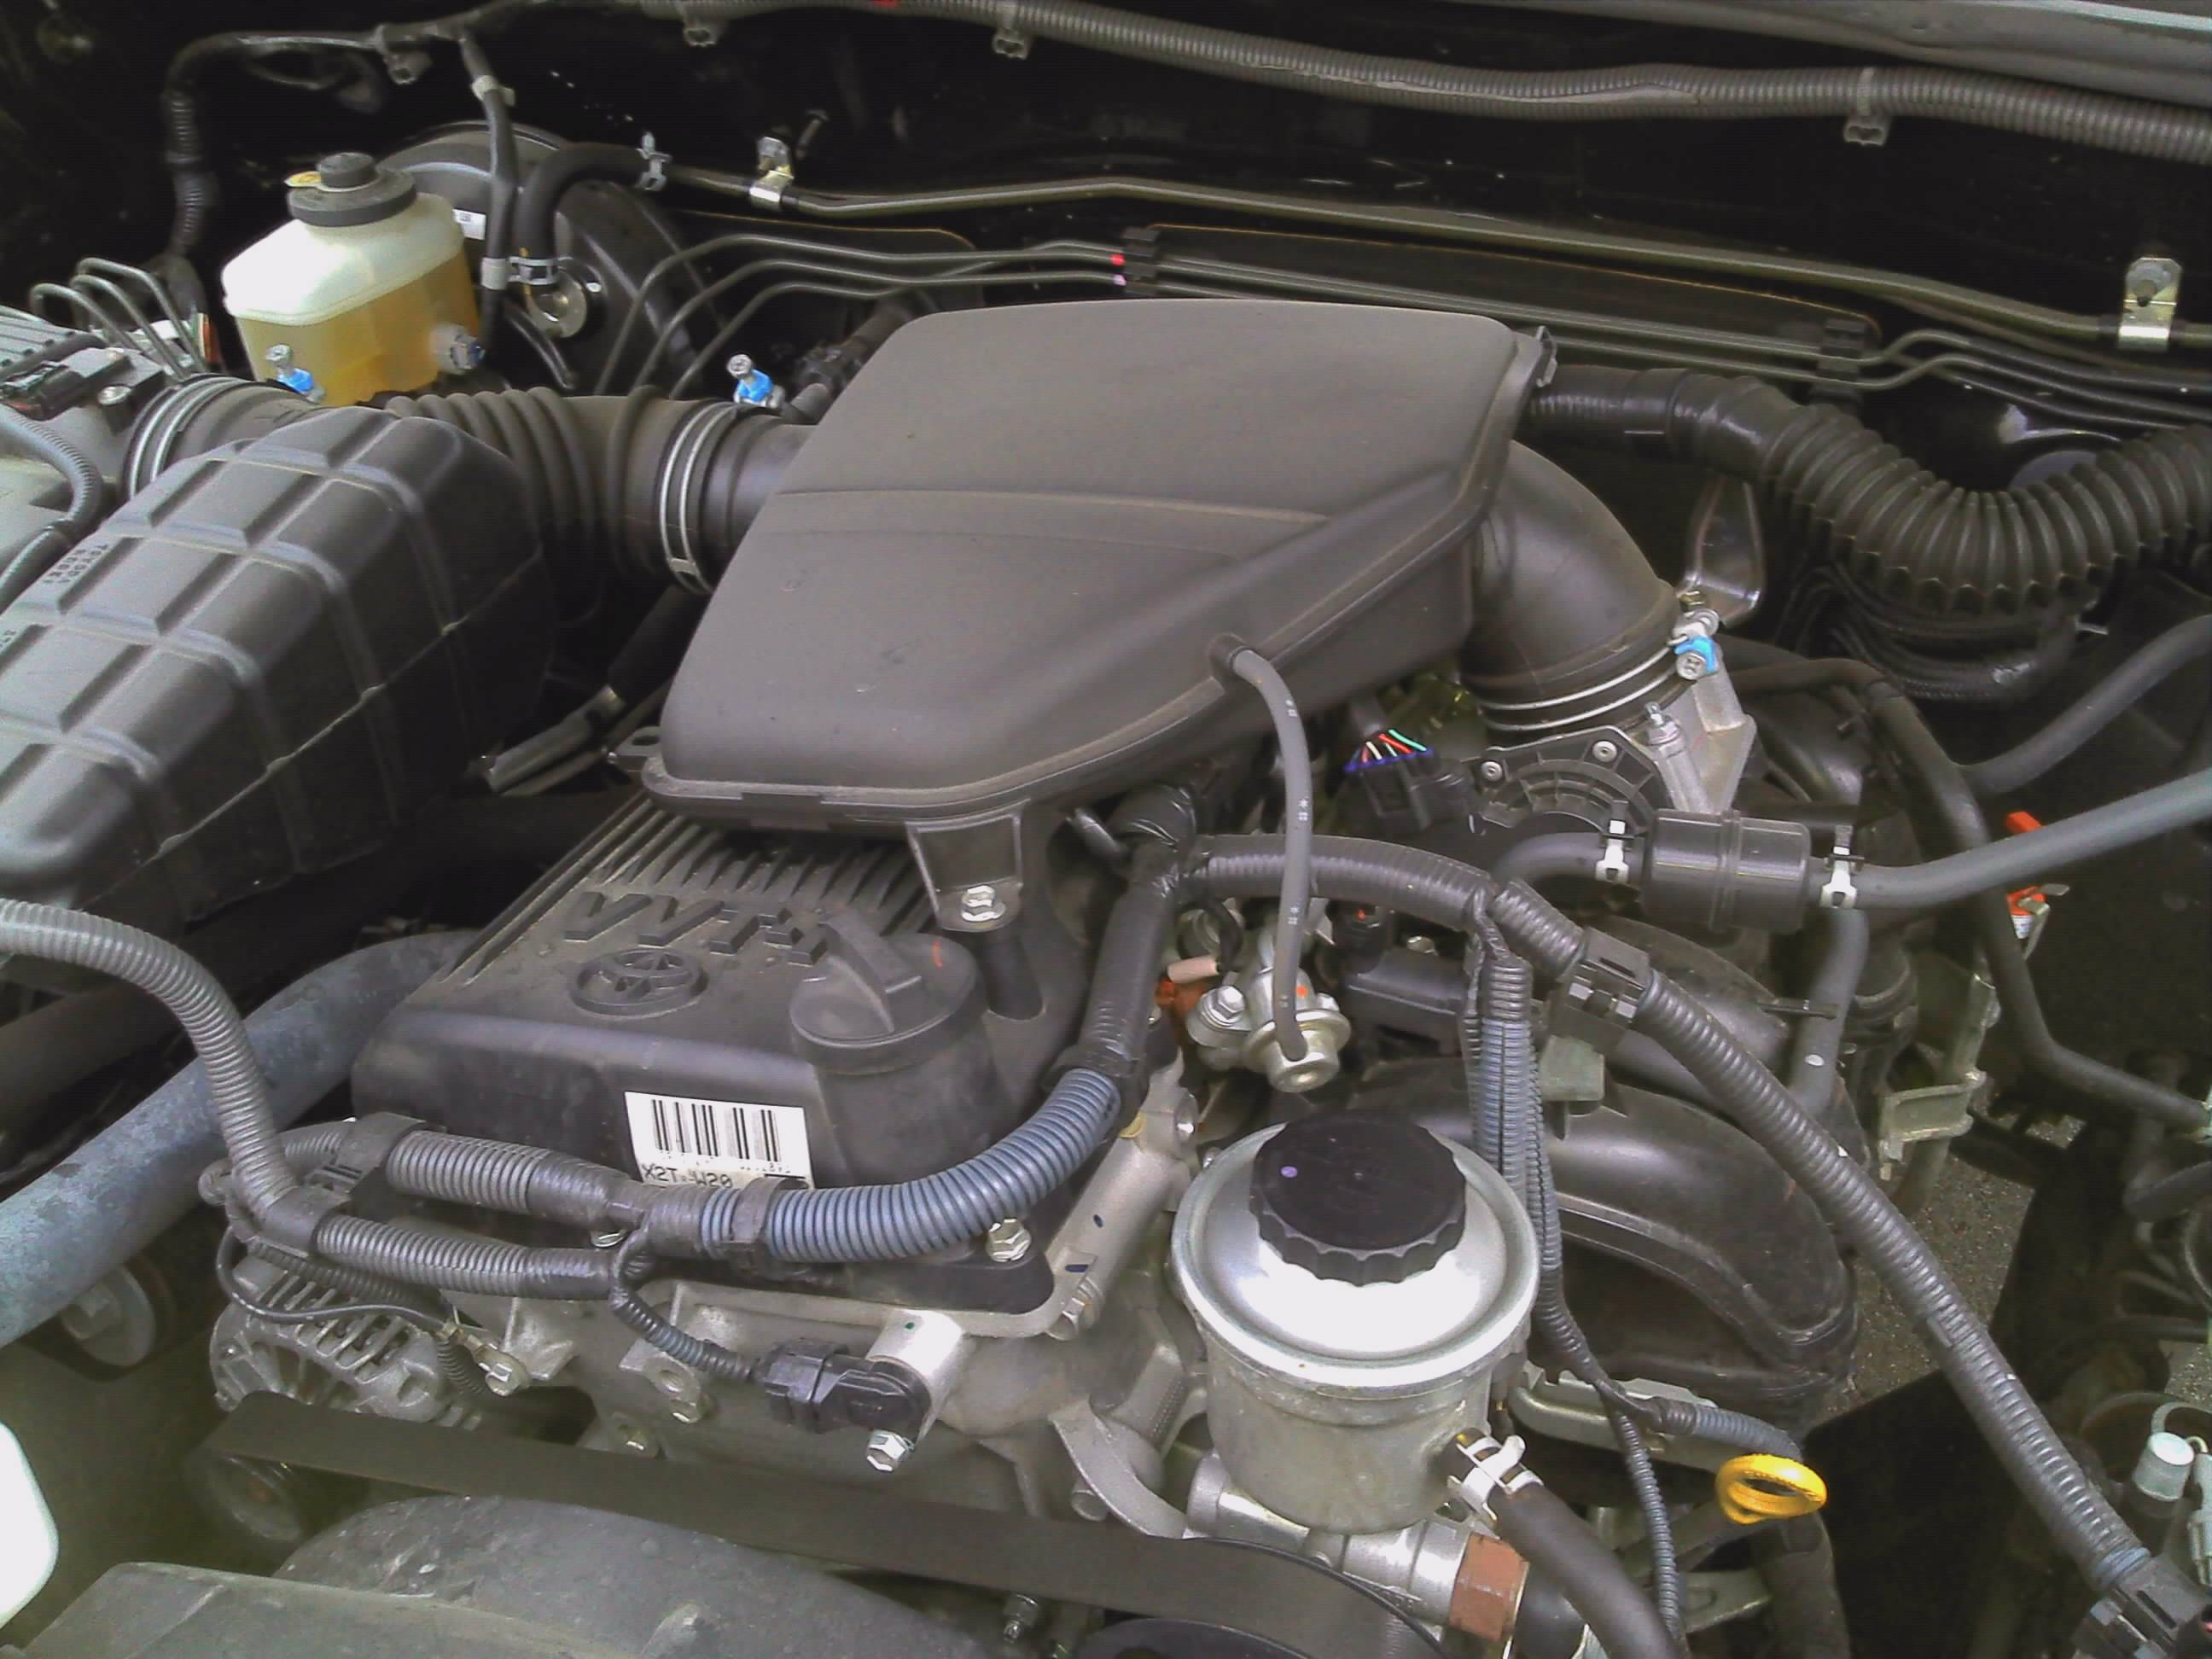 File Toyota 2TR FE in addition 3 0l V6 Engine Diagram additionally Watch additionally Watch further 7ktda Toyota Camry Timing Belt Replaced Idles Poorly. on 2001 toyota camry water pump replacement